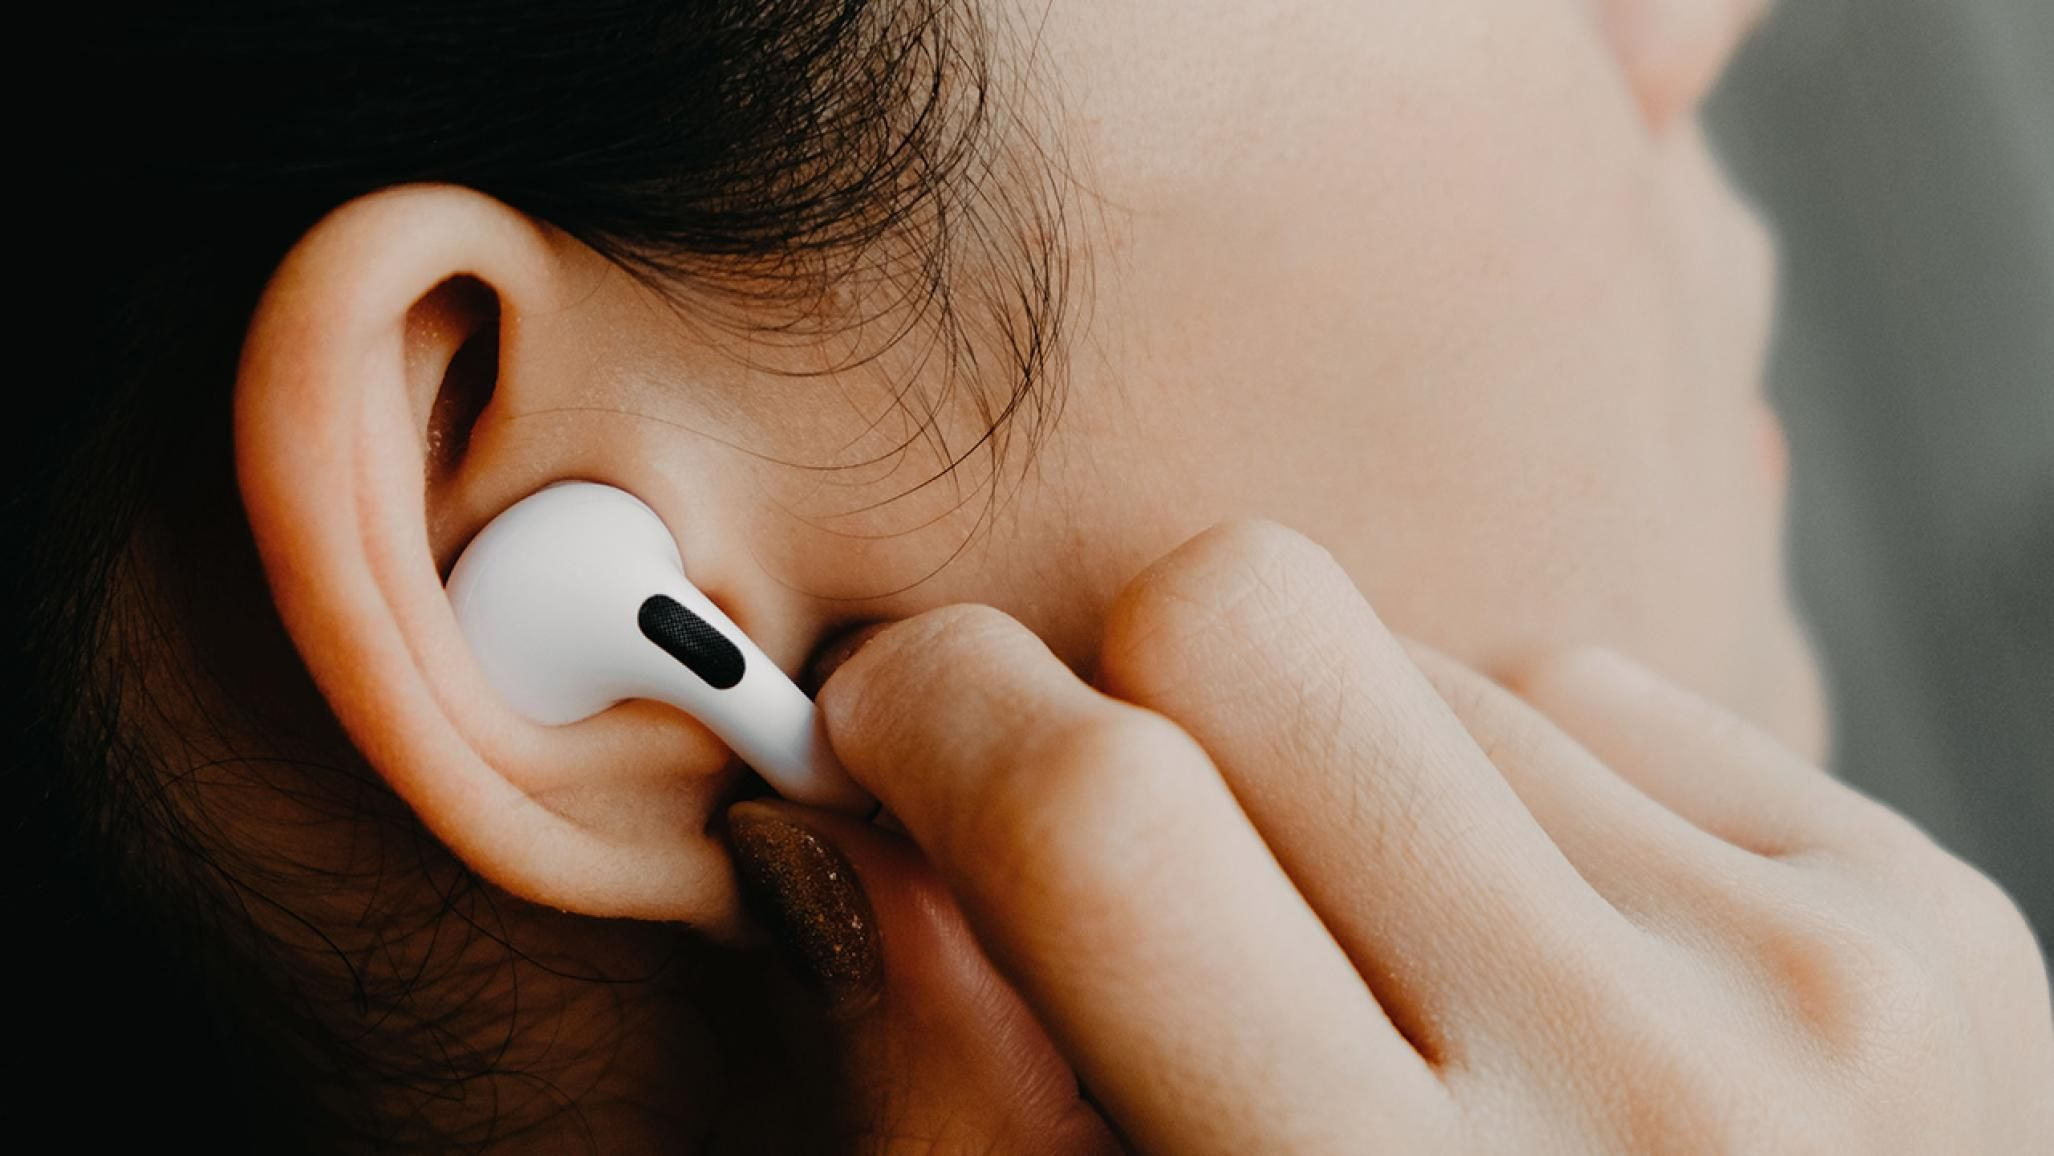 How To Connect Airpods To An Android Phone Noise Cancelling Airpods Pro Airpod Pro